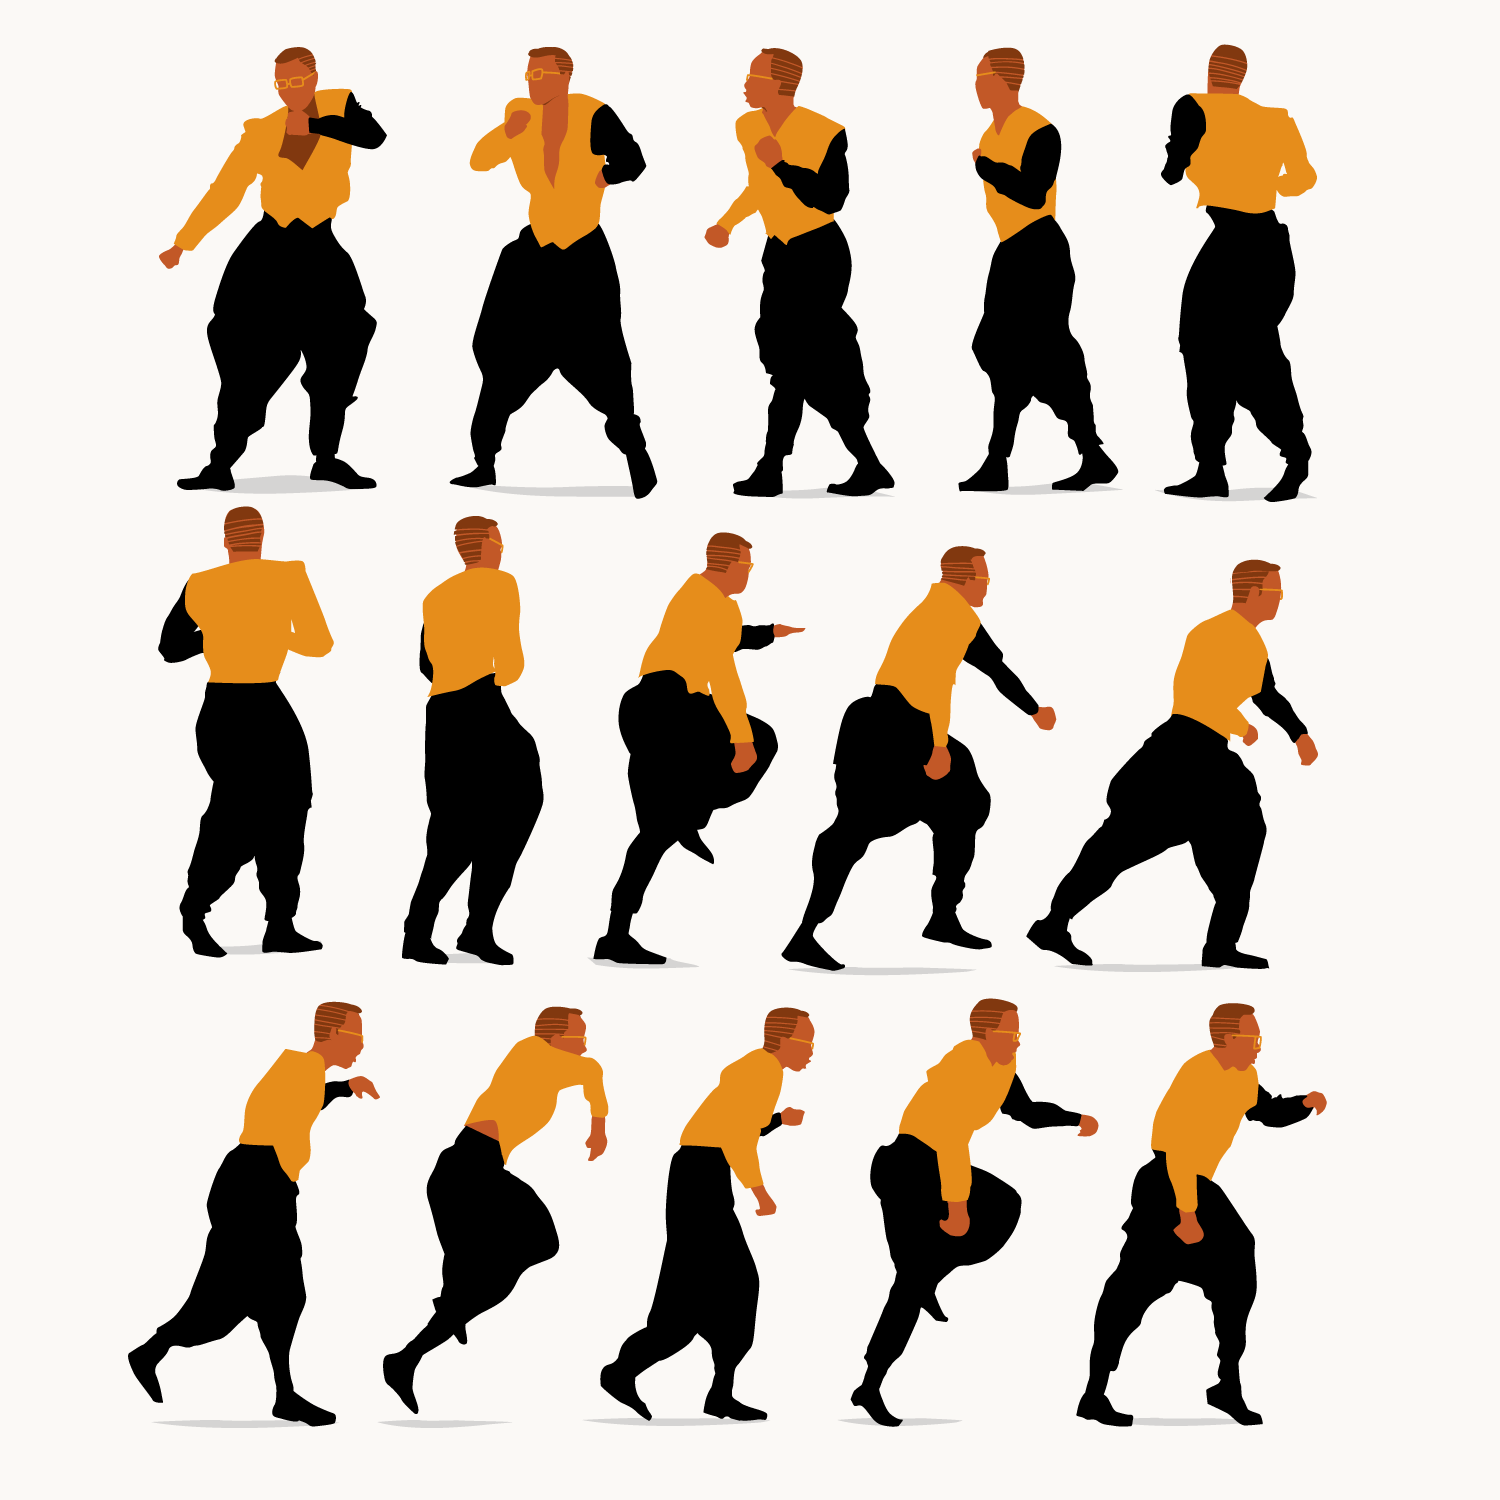 dancing-icons-insta-hammer.png